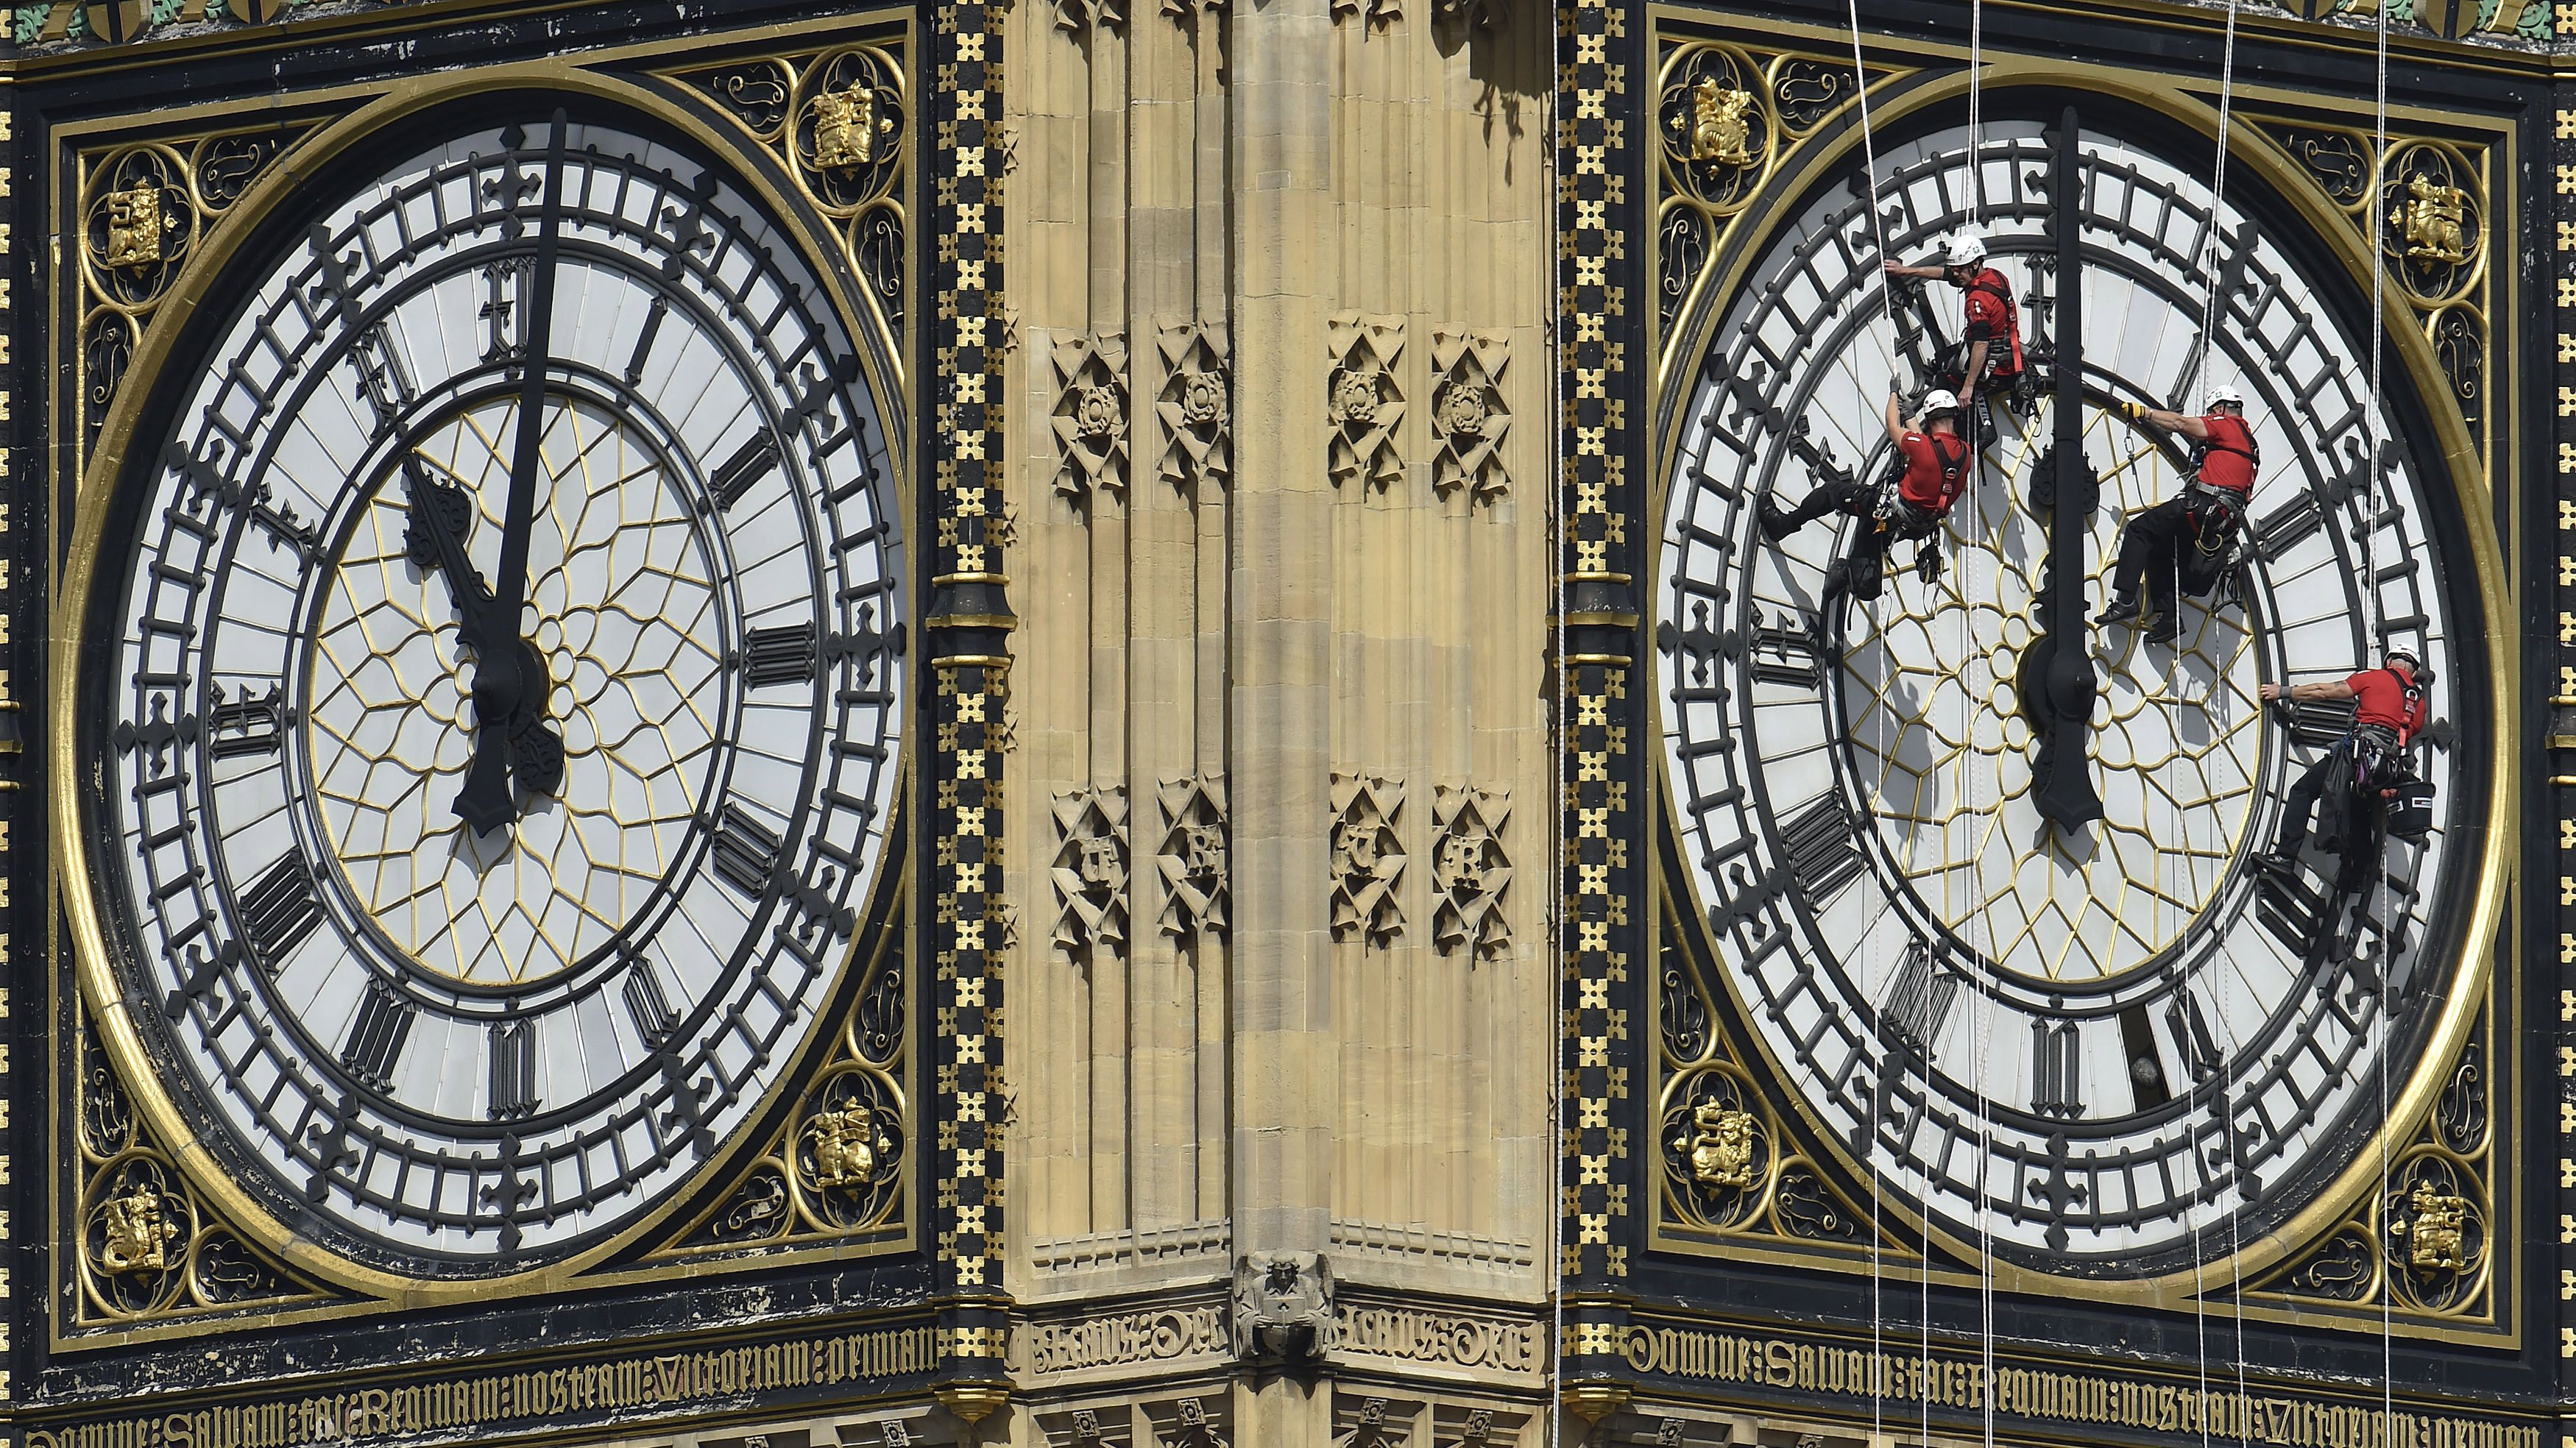 Cleaners abseil down one of the faces of Big Ben, to clean and polish the clock face, above the Houses of Parliament, in central London August 19, 2014. A week has been set aside for the cleaning of what is officially known as the Great Clock, which is set in the Elizabeth Tower. REUTERS/Toby Melville